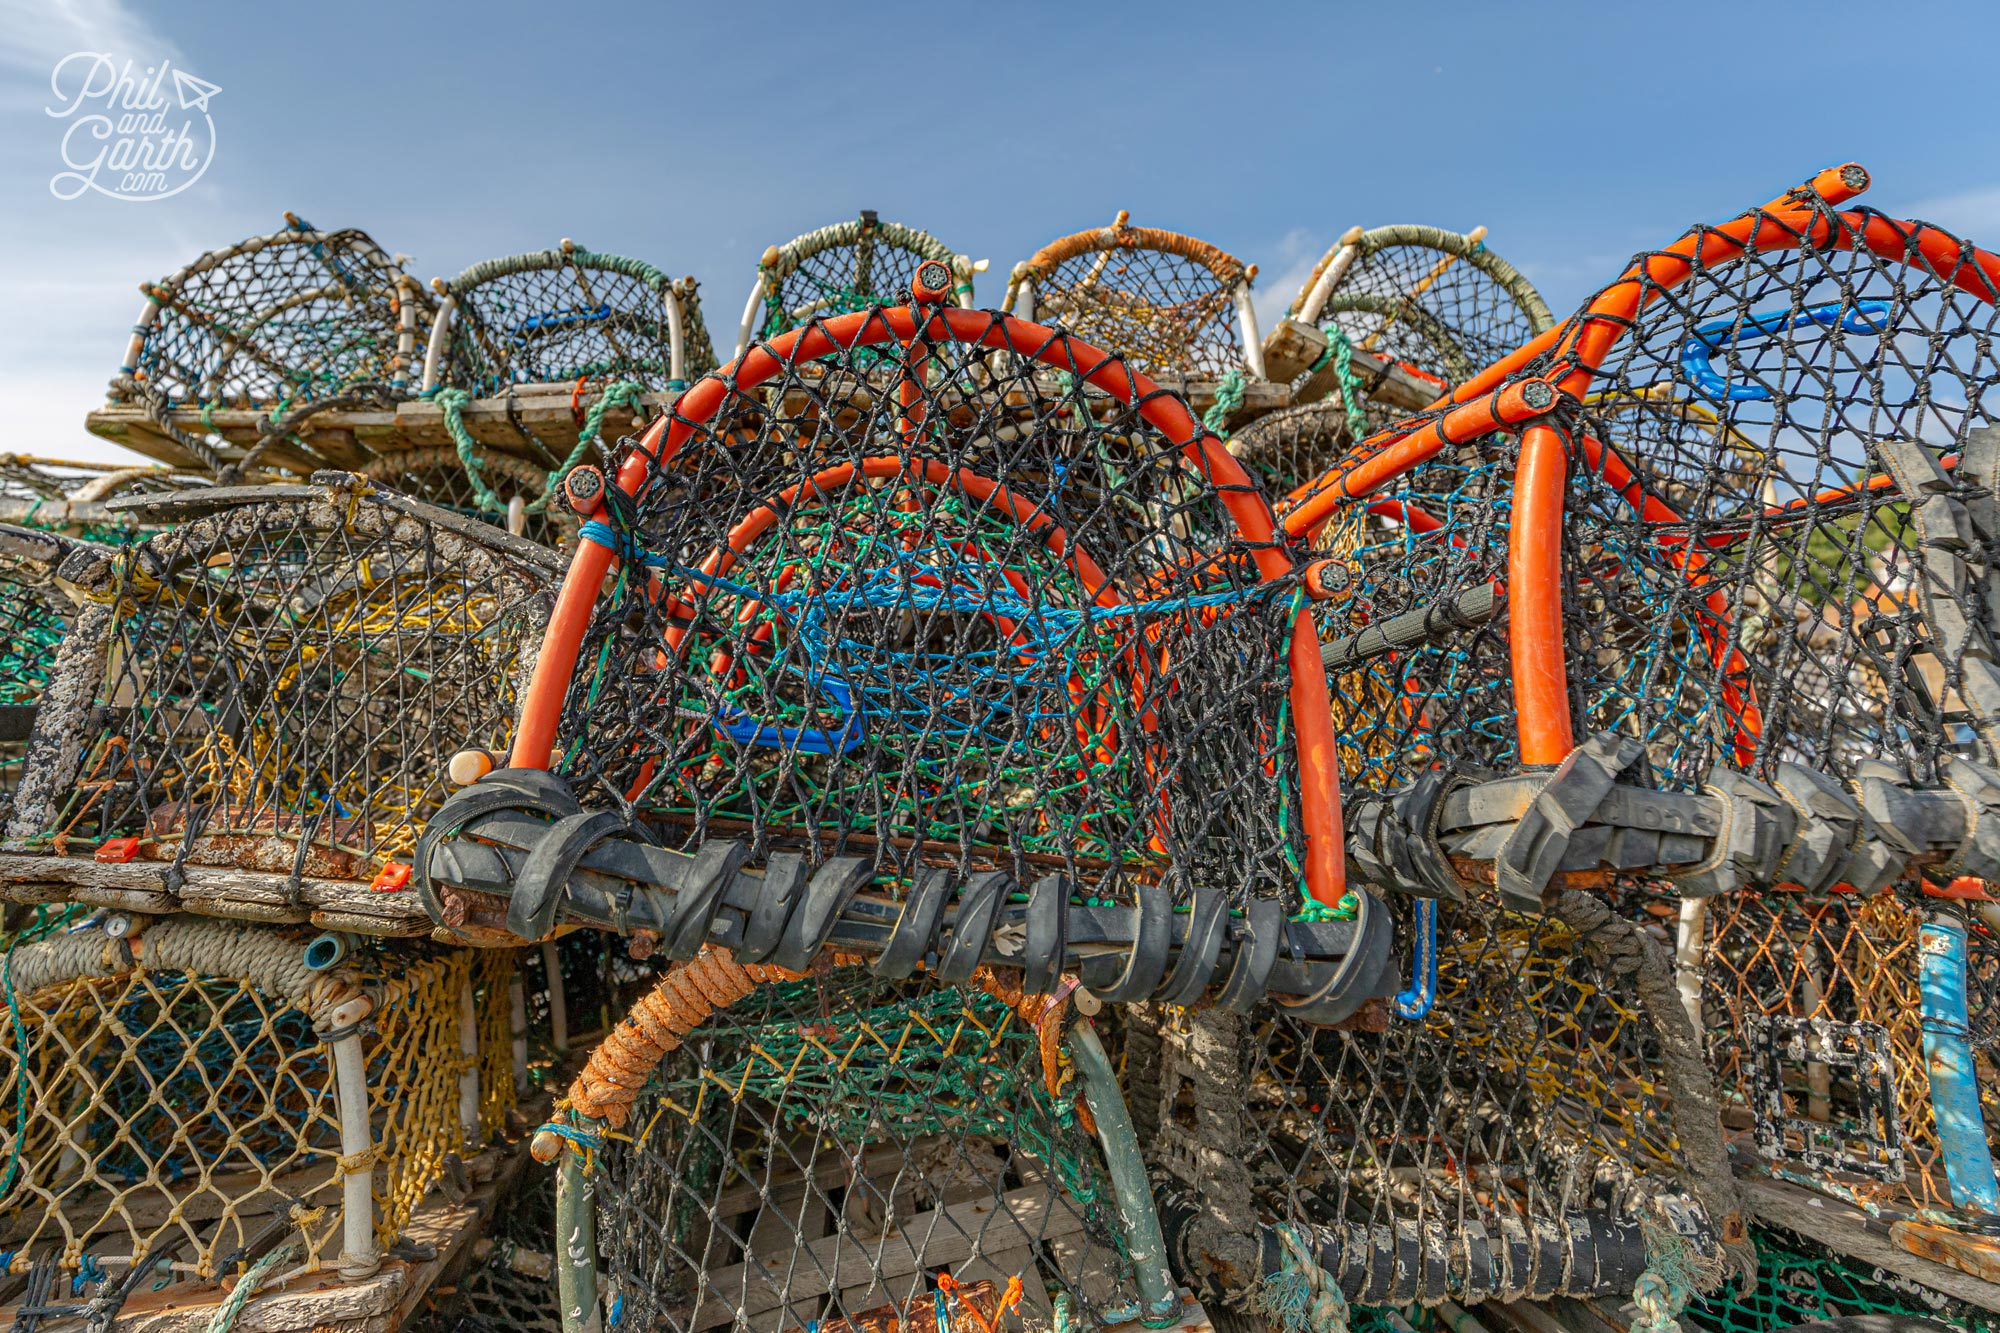 Lobster pots line the harbour, used by fishermen to catch lobsters, crayfish and crabs